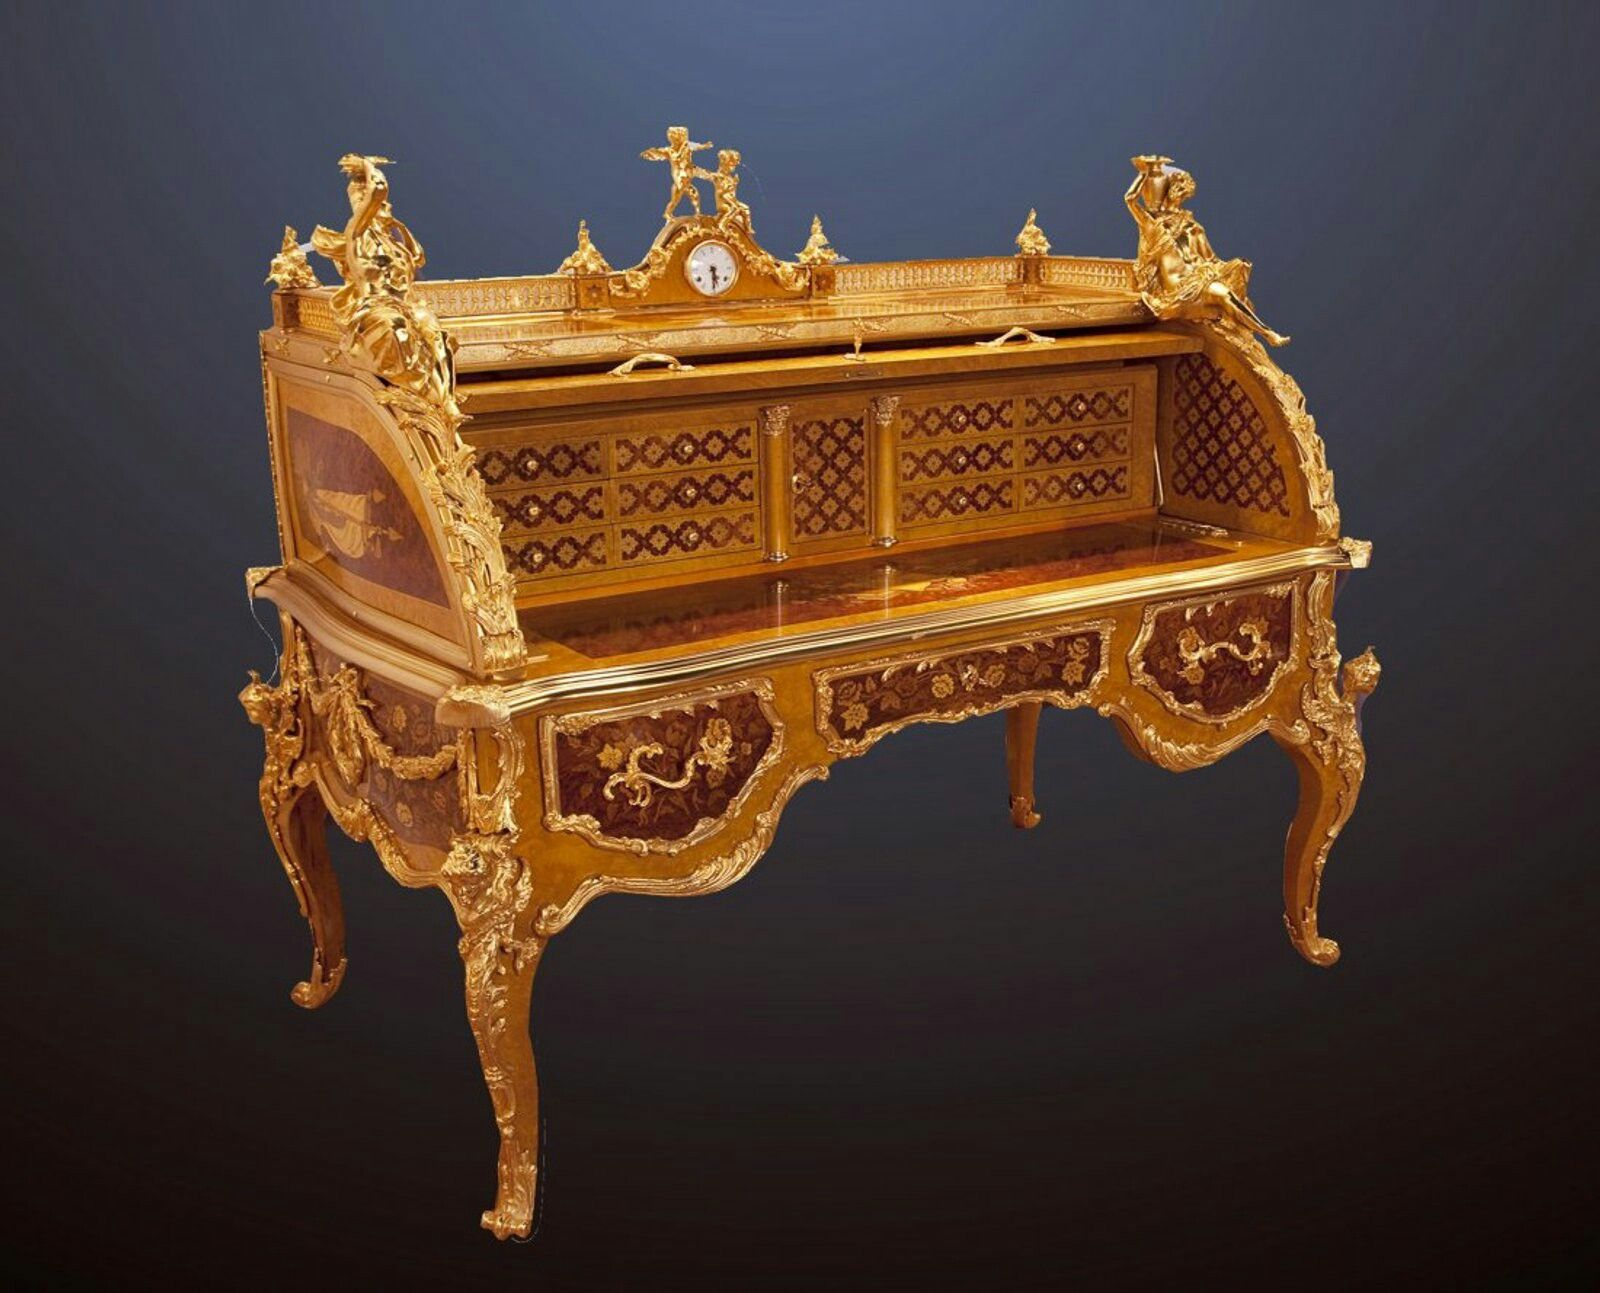 Monumental French Louis Xv Inlaid Cylinder Desk 64 W X 60 H X 39  ~ Como Restaurar Muebles Antiguos Manual Basico Para Principiantes